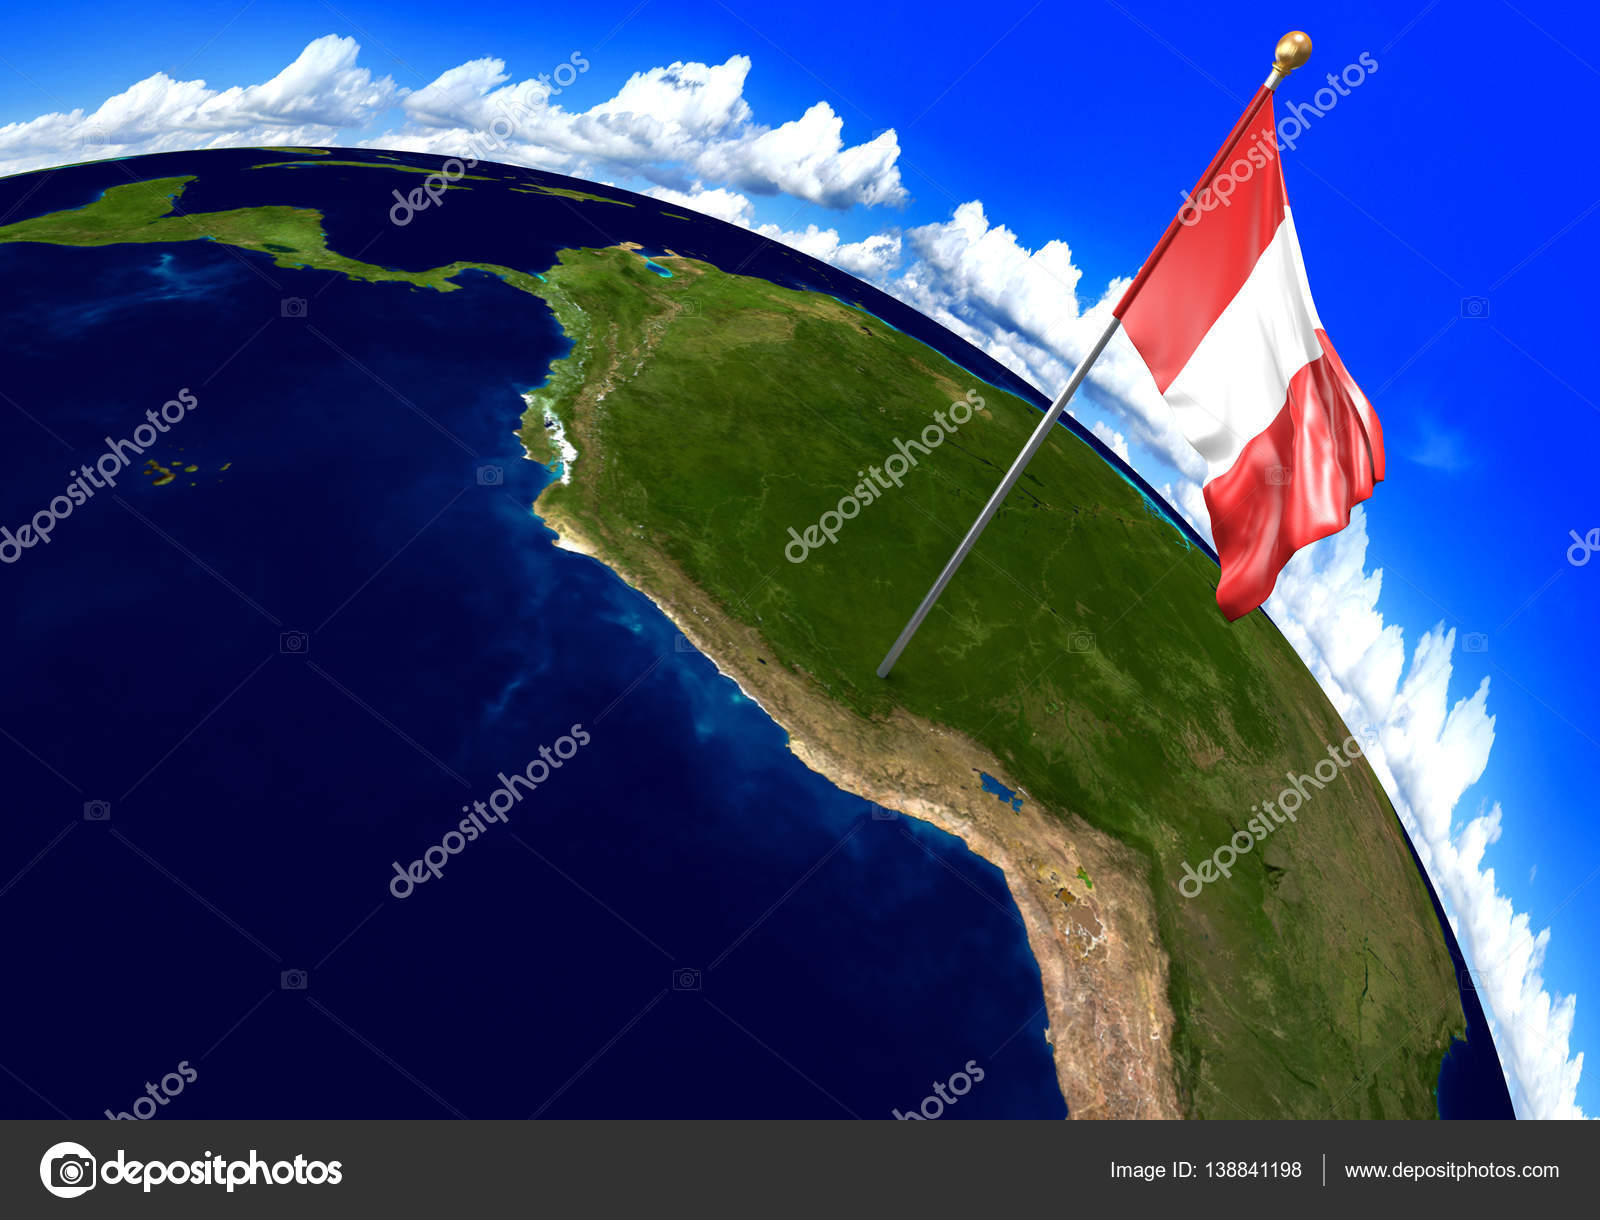 Peru national flag marking the country location on world map 3d 3d render of the national flag of peru over the geographic location of the country on a world map parts of this image furnished by nasa photo by kagenmi sciox Choice Image